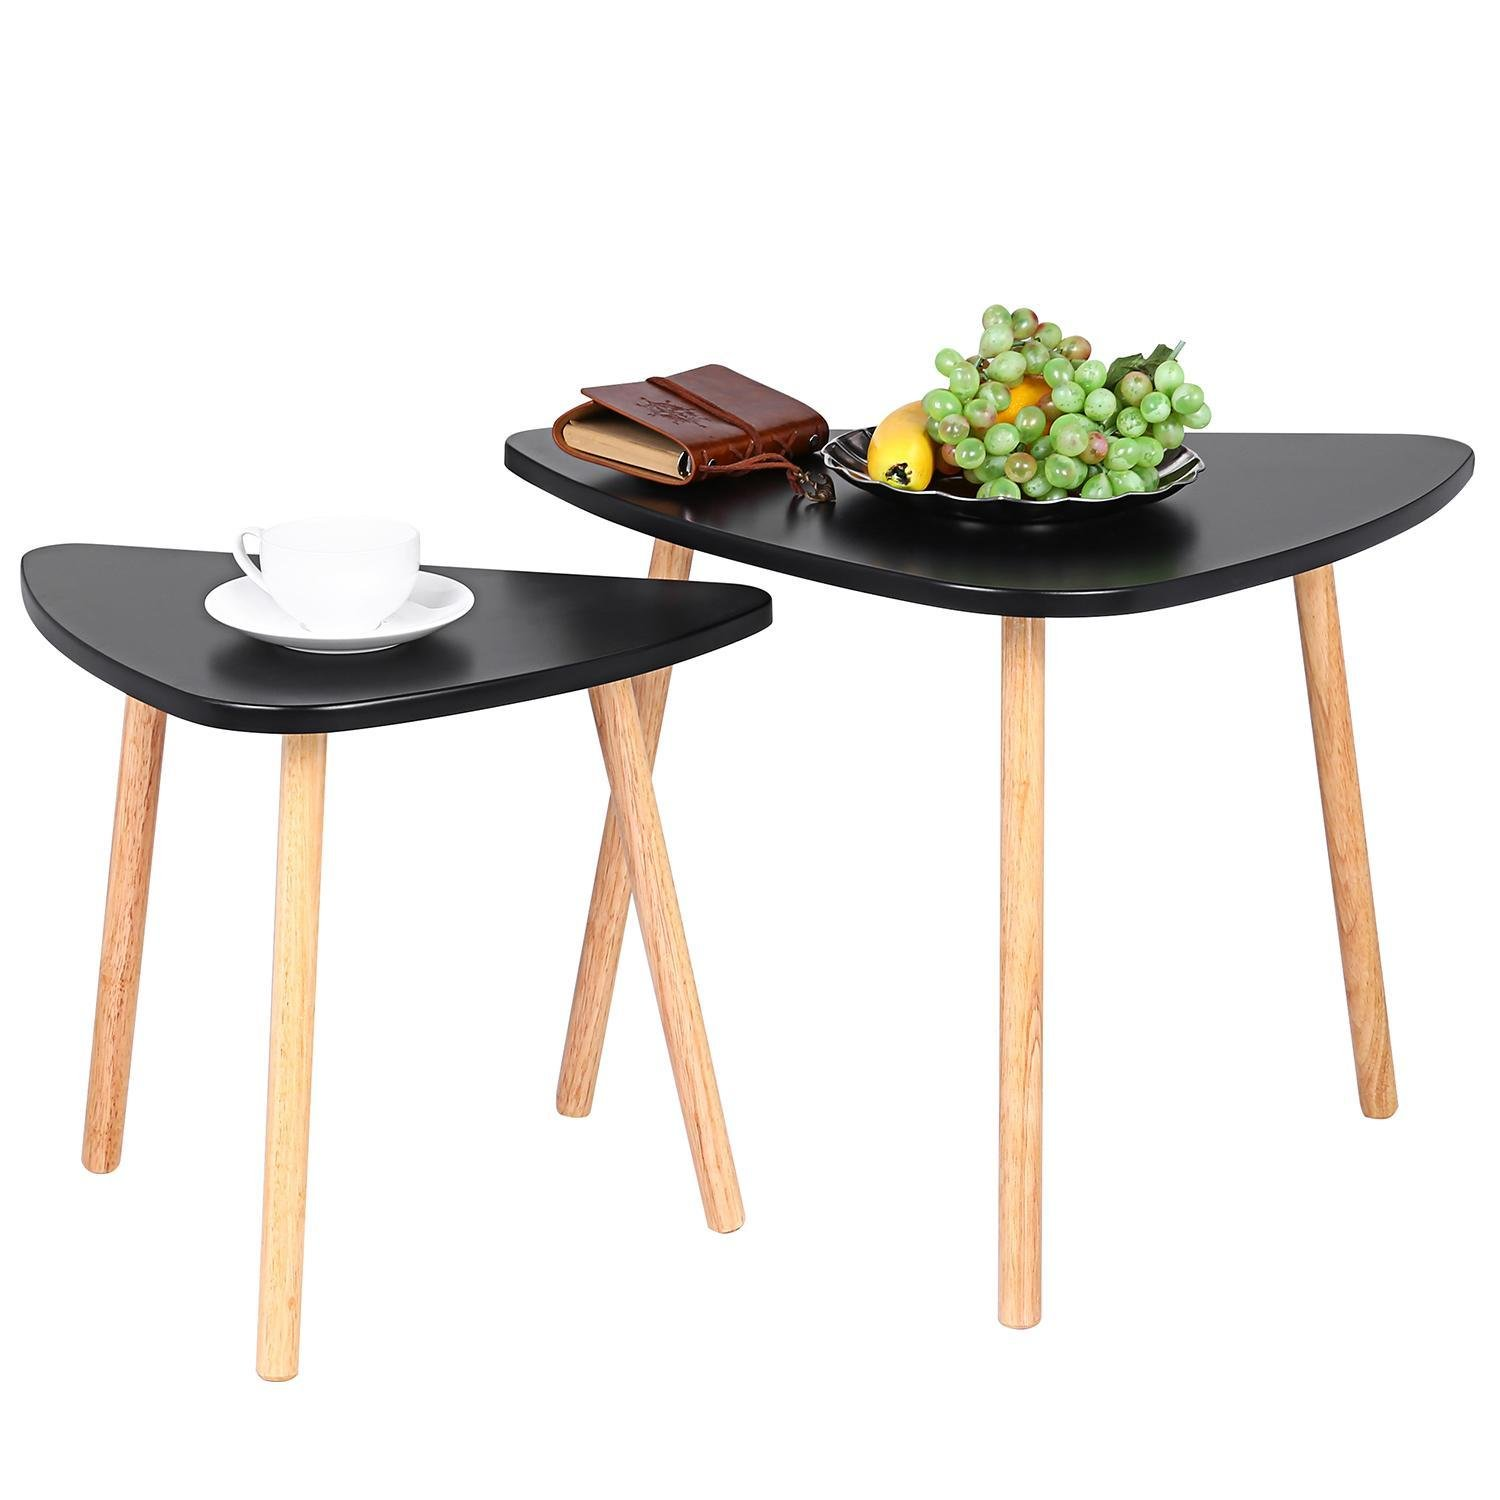 Rapesee Set of 2 Simple Small Coffee Tables, Modern Wooden Triangle Shape Coffee Tables for Bars, Living Room, Bedroom, Office, Hotel